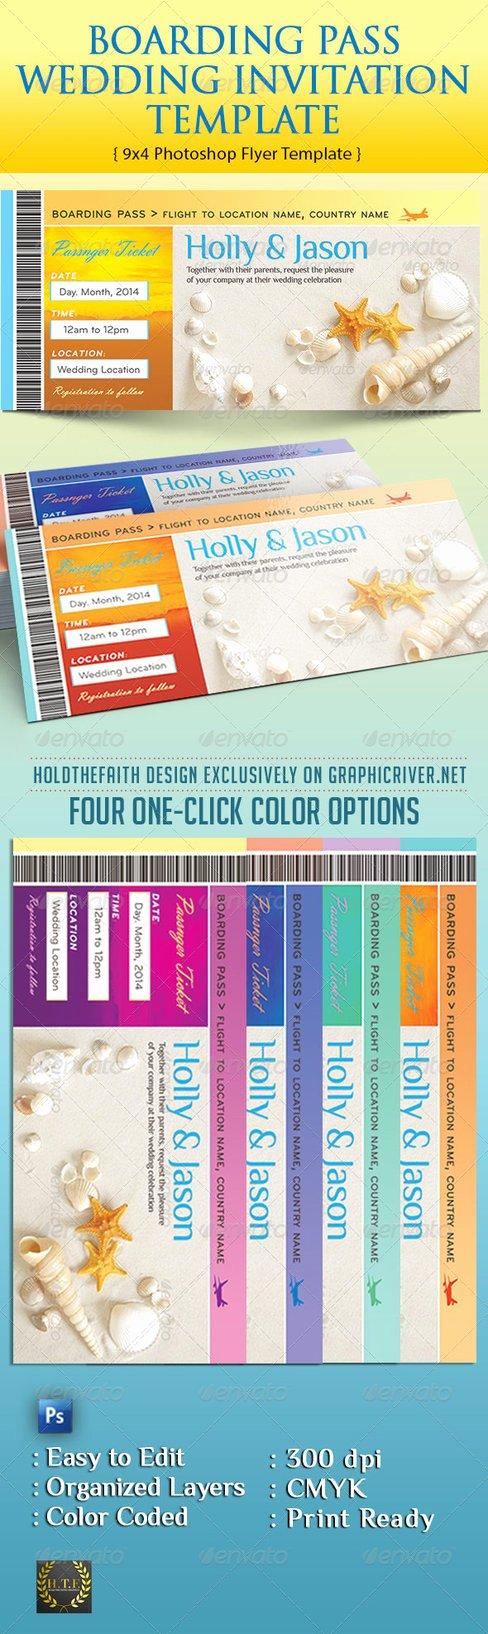 Boarding Pass Template Photoshop New Boarding Pass Wedding Invitation Template by Godserv On